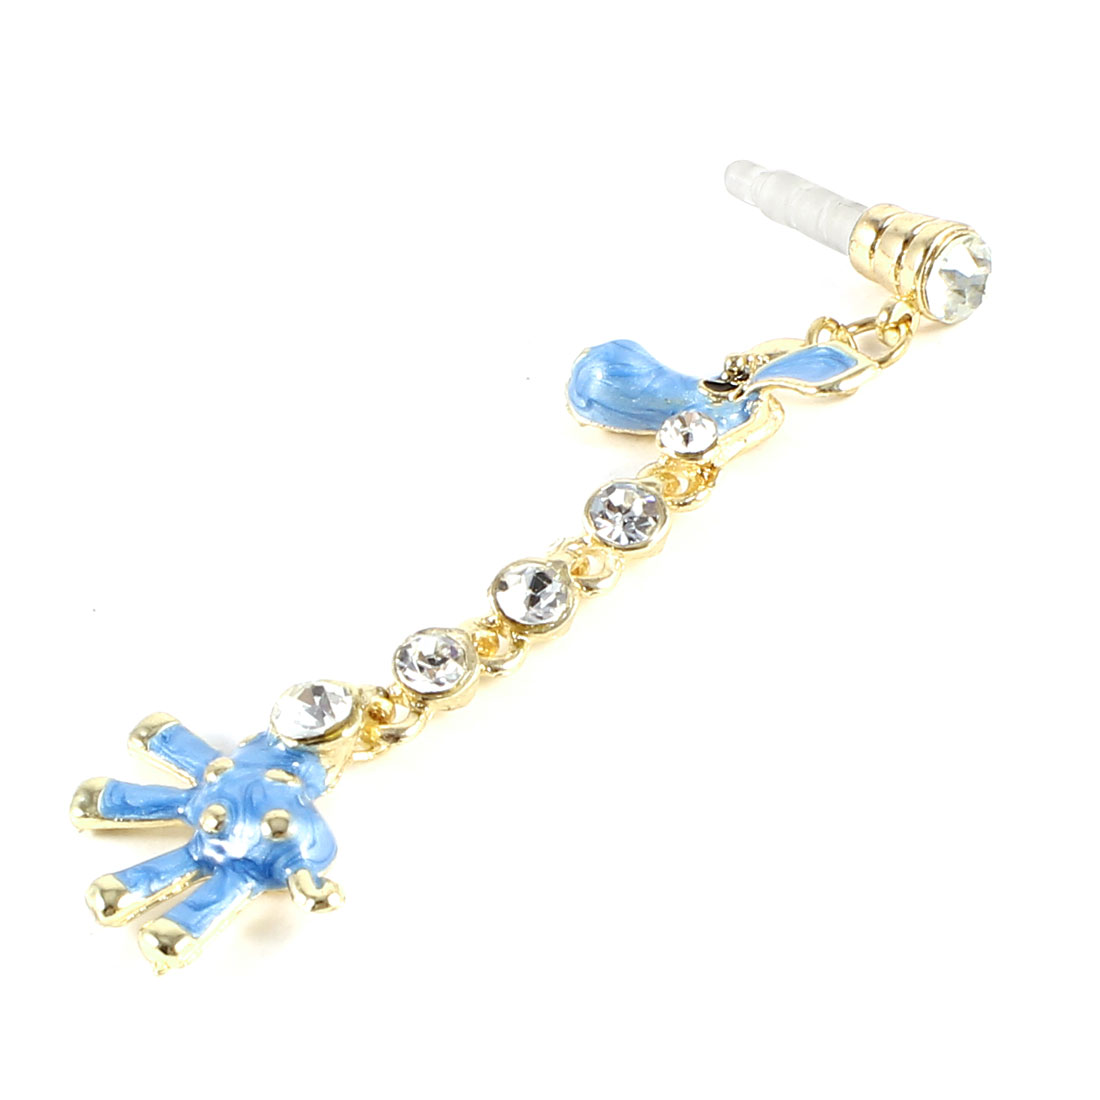 Rhinestone Giraffe Detailing 3.5mm Earphone Ear Cap Anti Dust Dustproof Stopper Blue